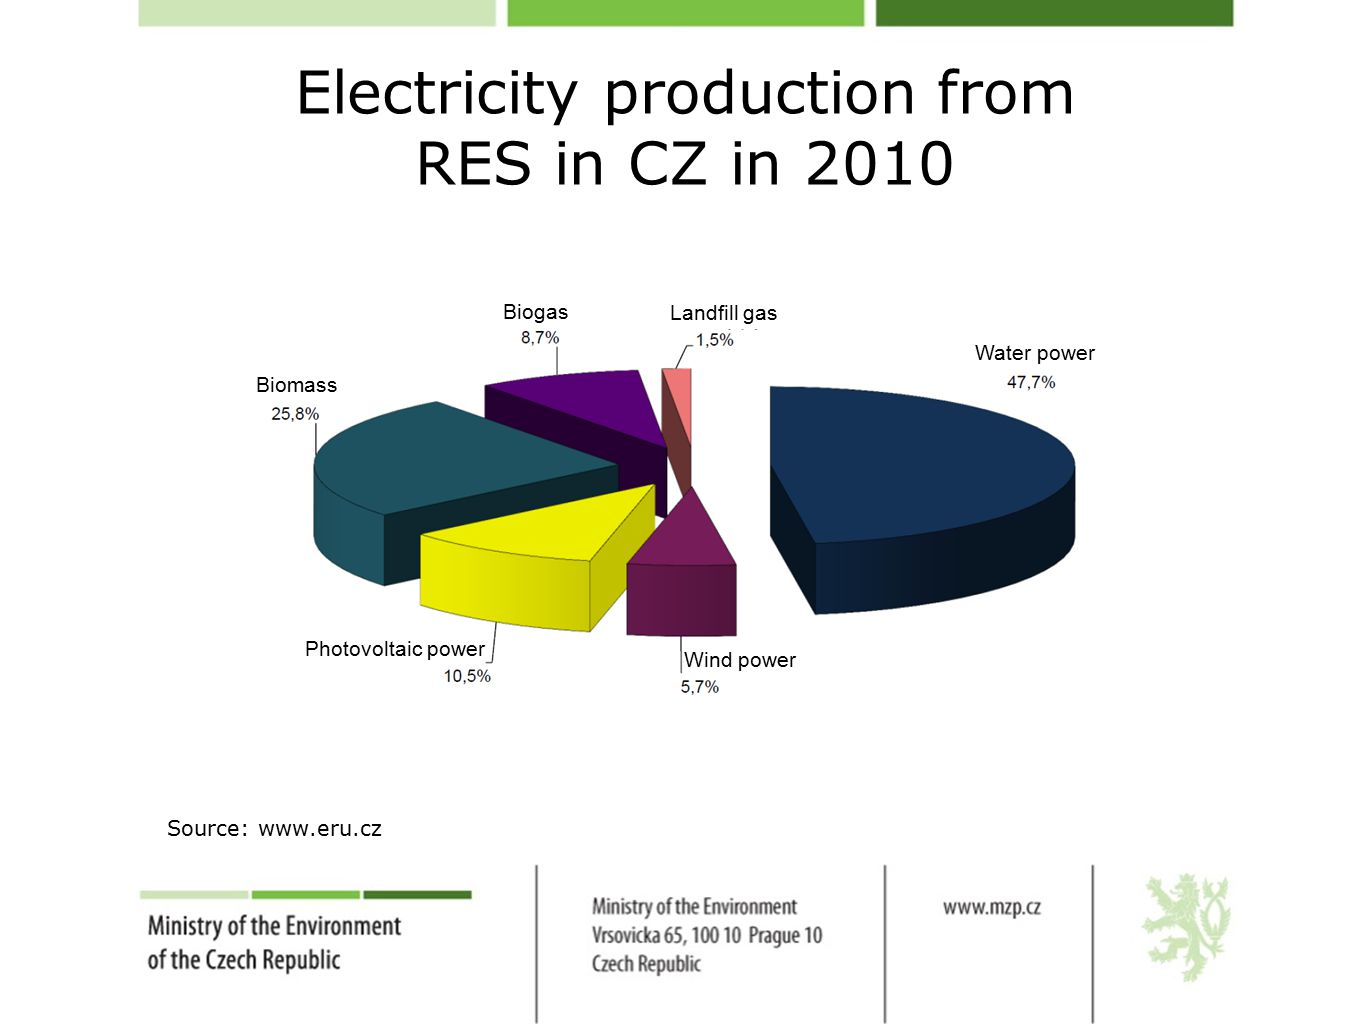 Electricity production from RES in CZ in 2010 Source: www.eru.cz Biomass Biogas Landfill gas Photovoltaic power Wind power Water power